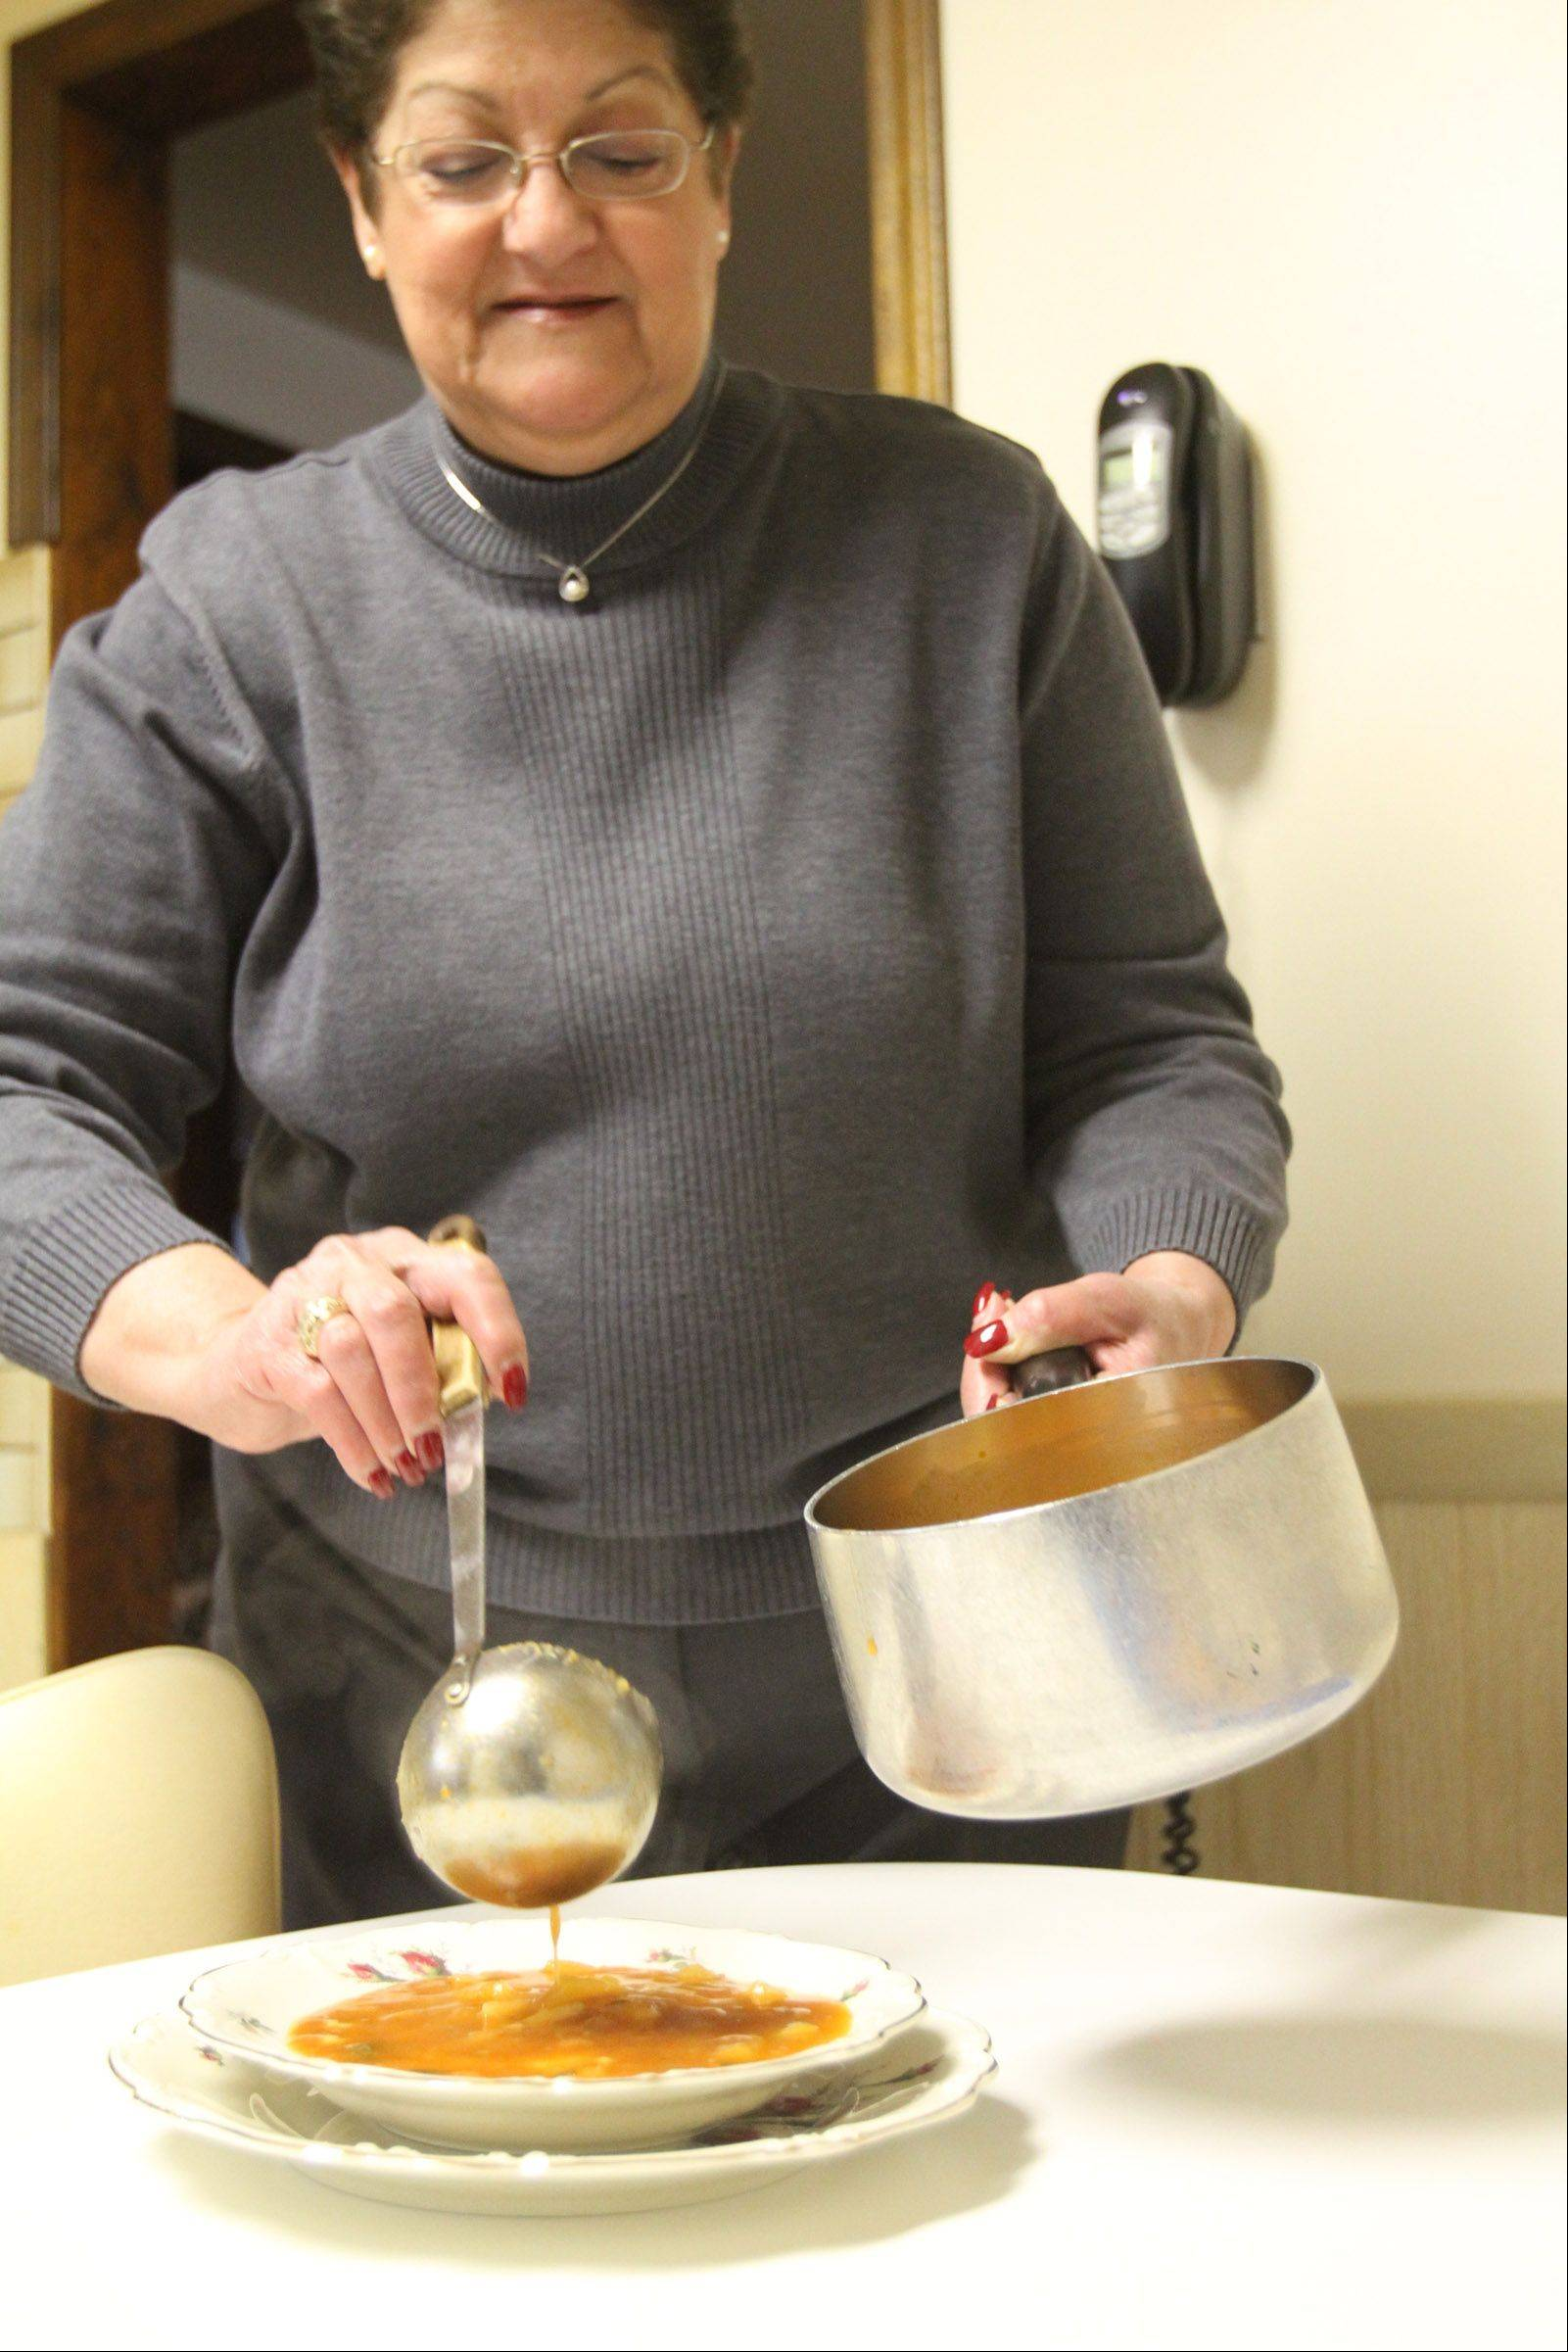 Angie Gergen makes zucchini soup in her kitchen in Hoffman Estates.